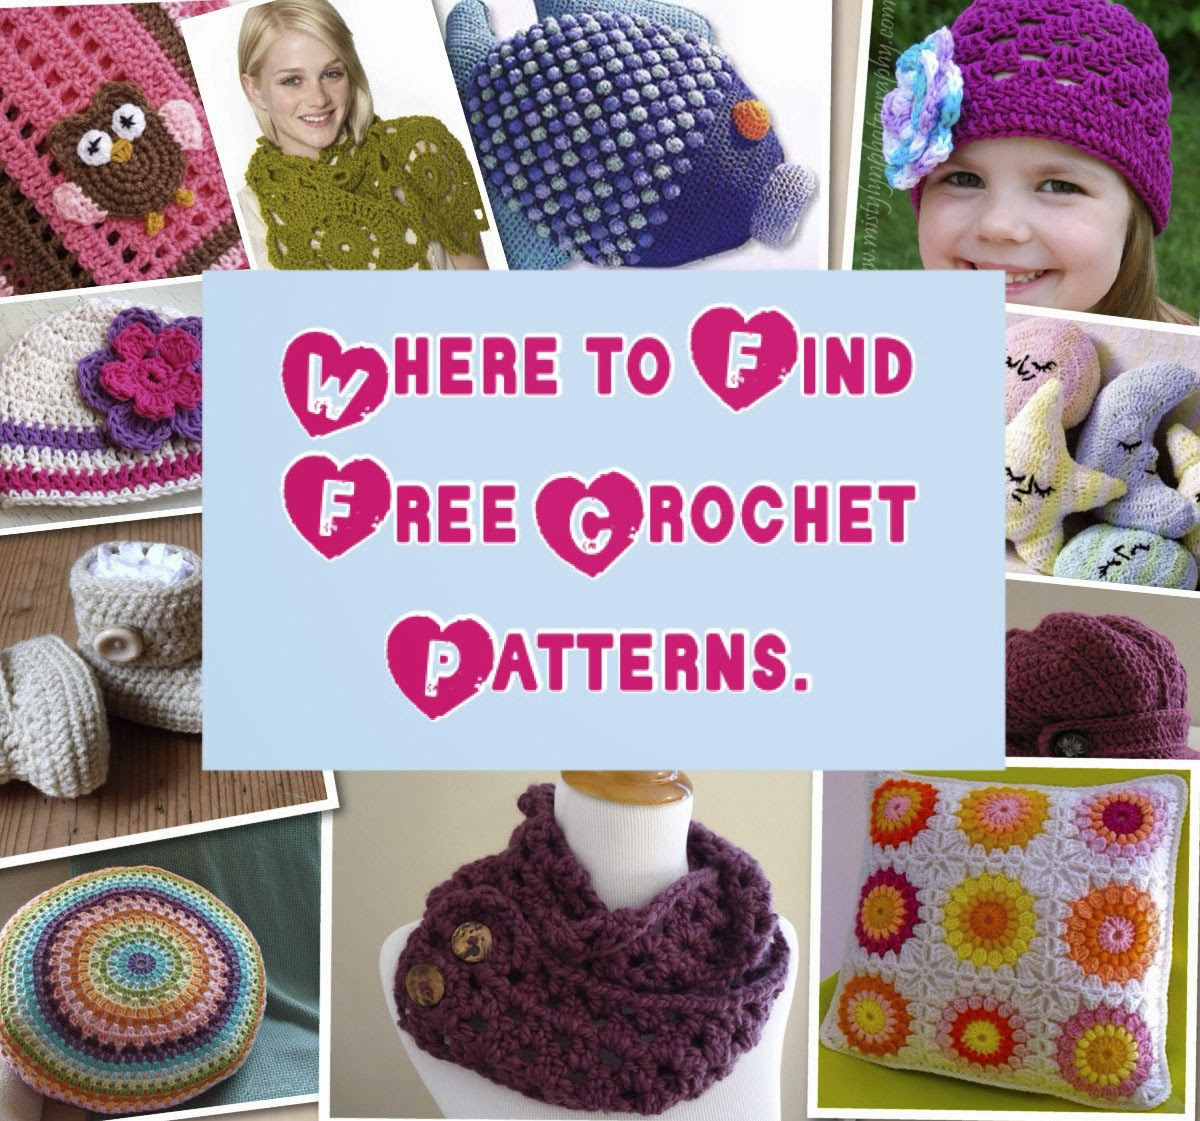 Crochet Patterns To Buy : Tampa Bay Crochet: Where to Find Free Crochet Patterns: Directory of ...